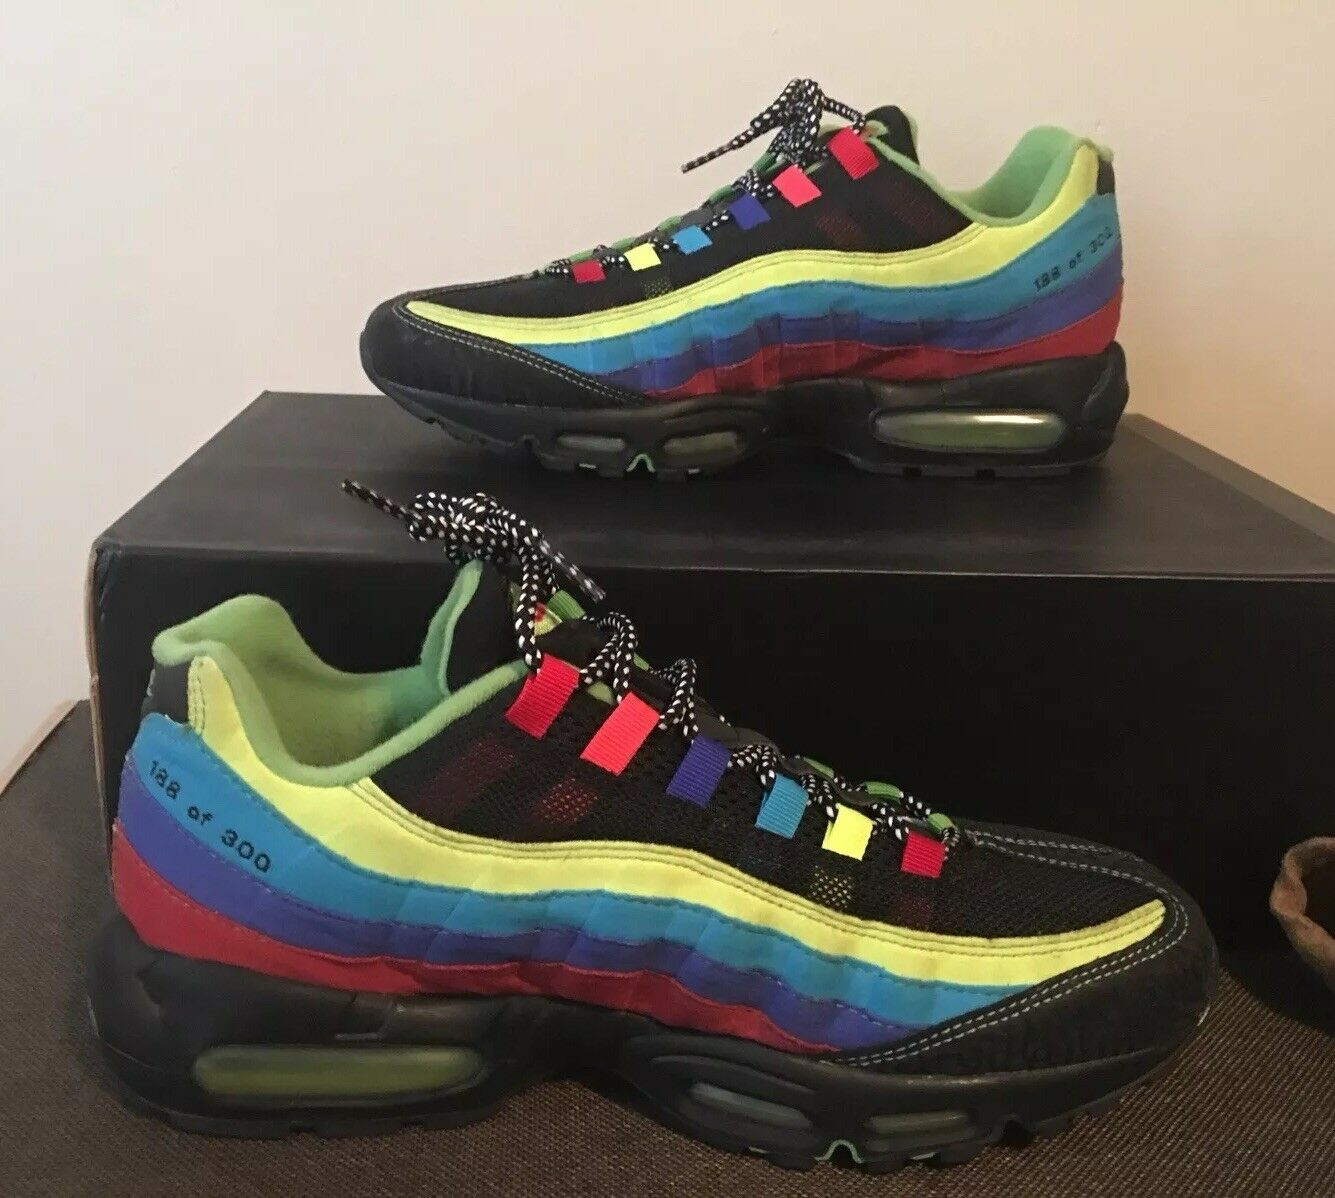 Deadstock Nike Sole Collector Air Max 95 11. Only 300 Pairs ! Seasonal clearance sale